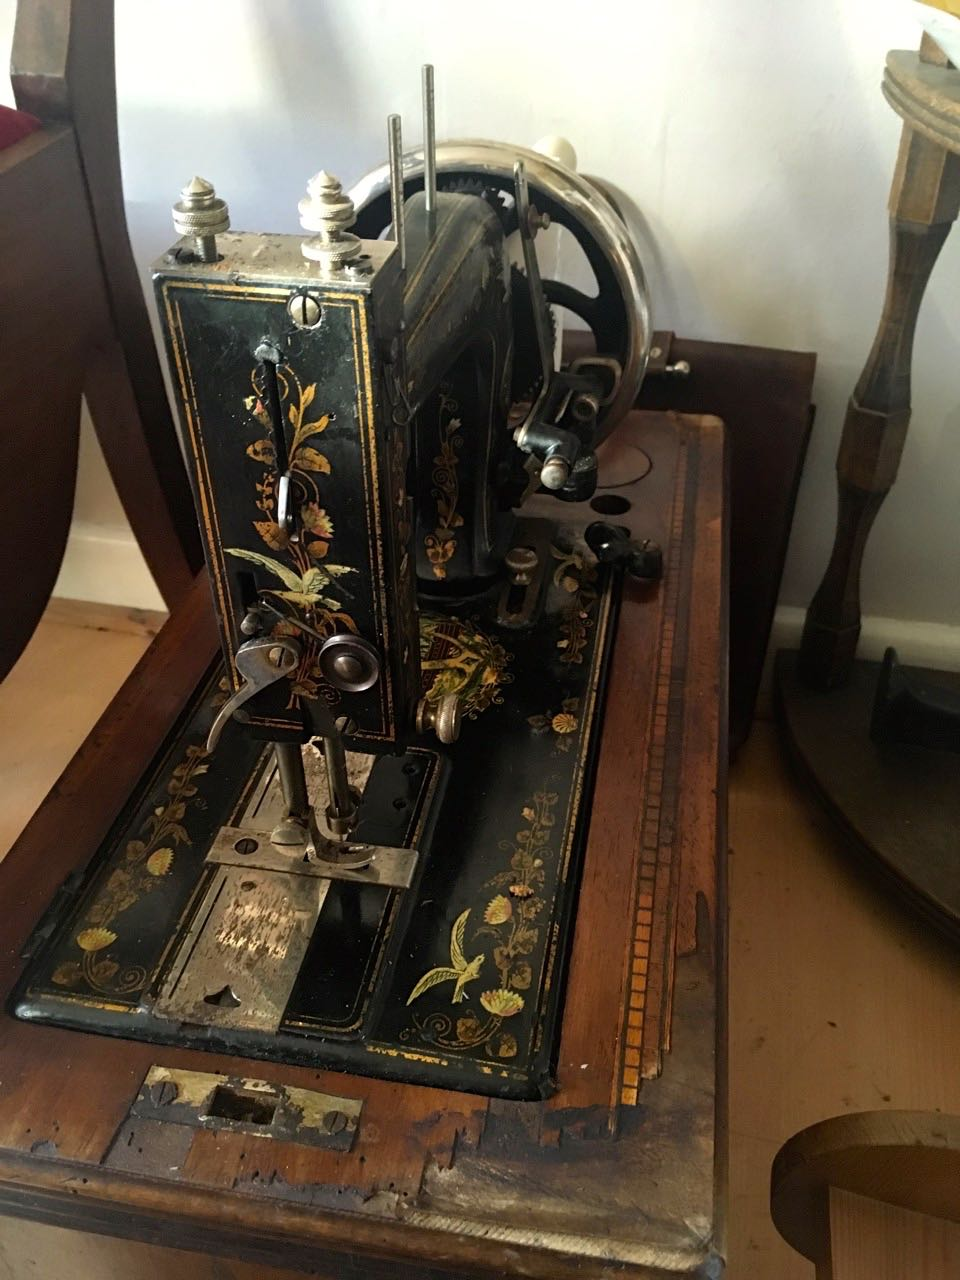 A pretty vintage sewing machine, shame the case was damaged